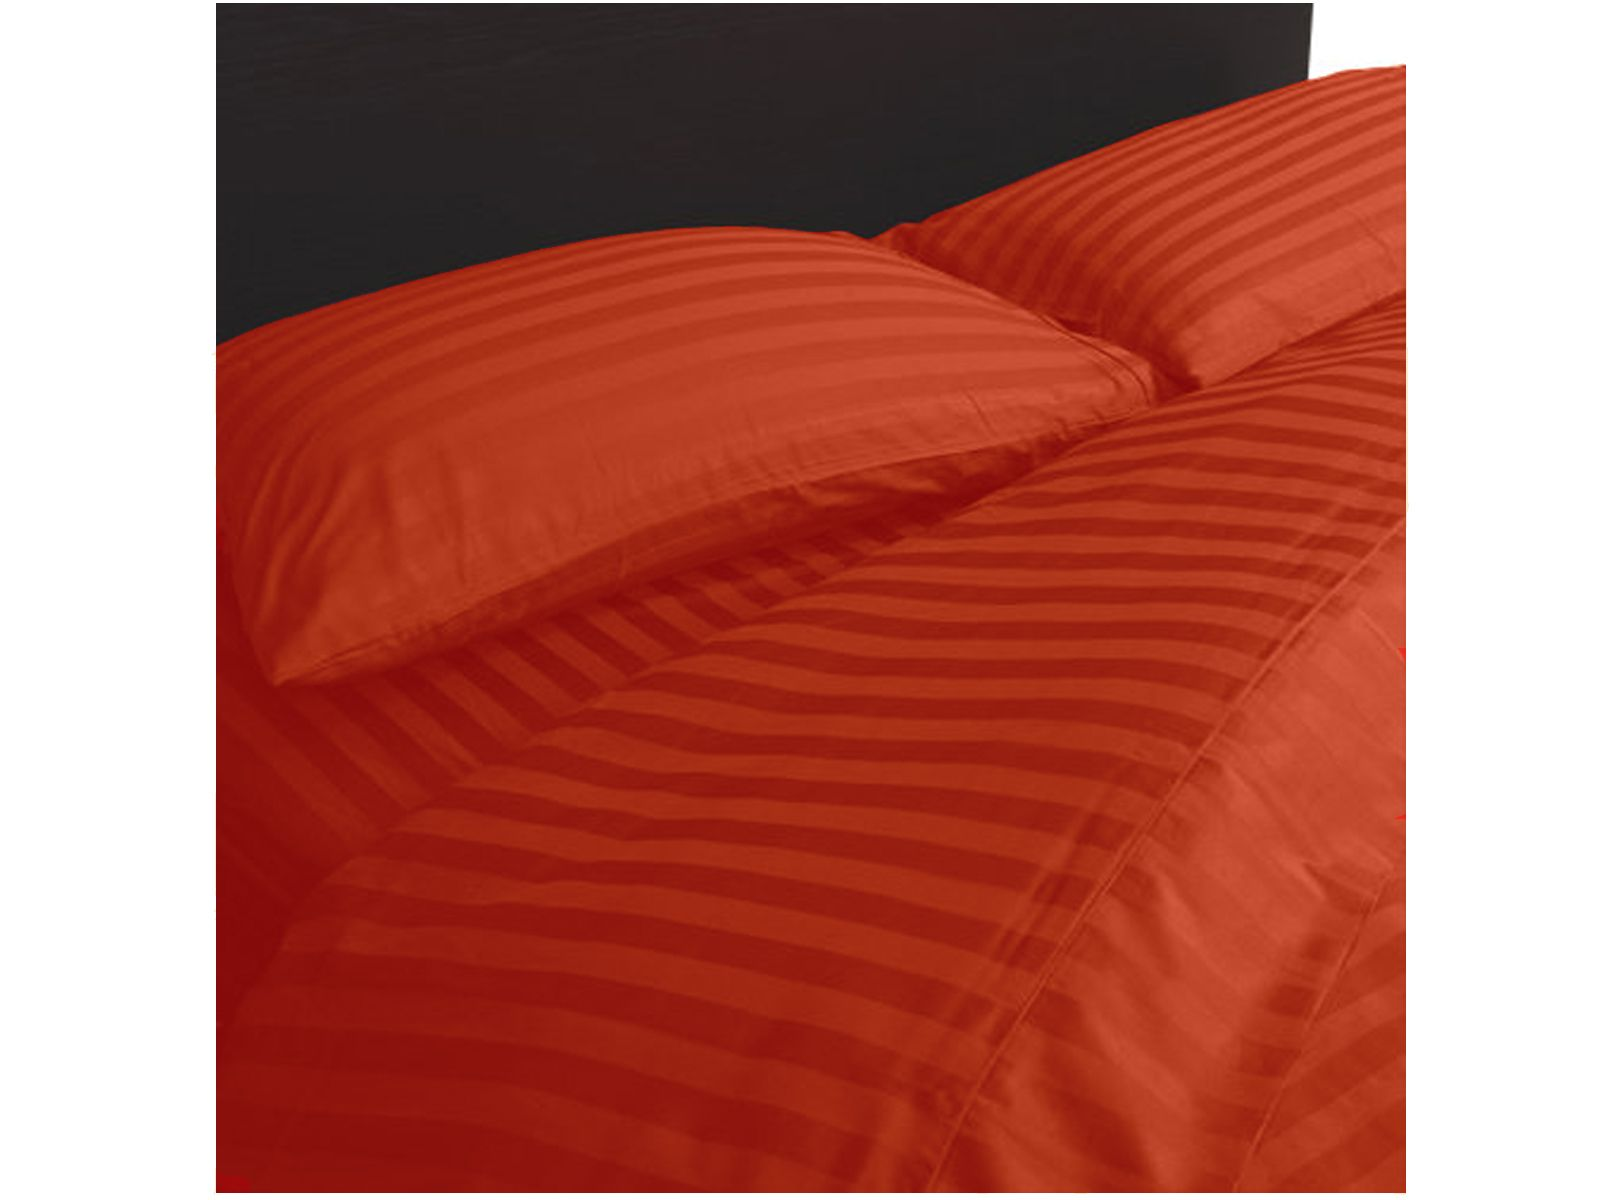 Extravagant Sheets Hotel Quality 1000TC Egyptian Cotton Stripe Sheet Set - Olympic/Expanded Queen , Brick Red with 25